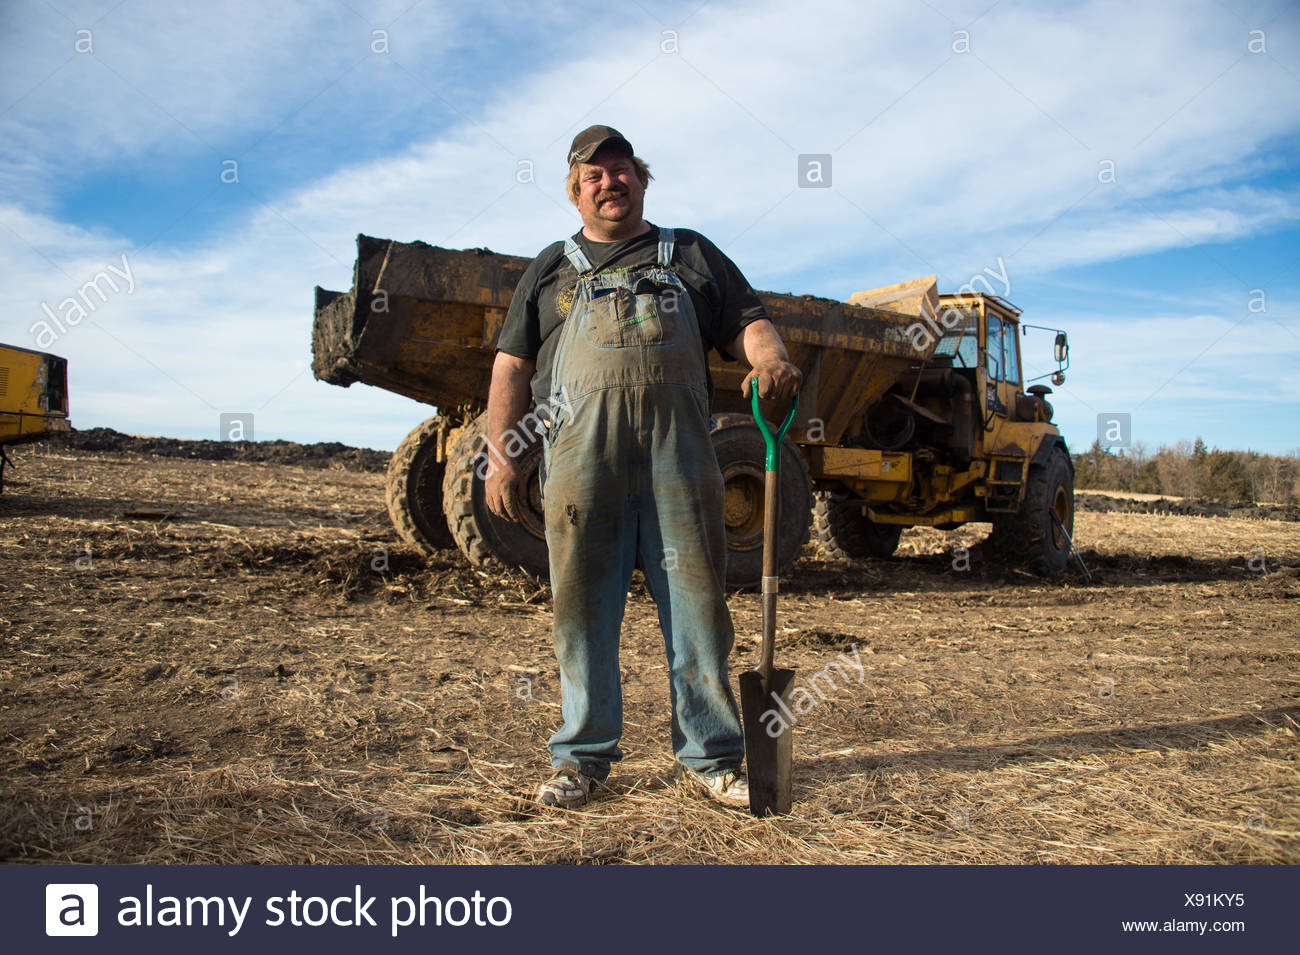 A man stands in front of a truck used for excavation. - Stock Image